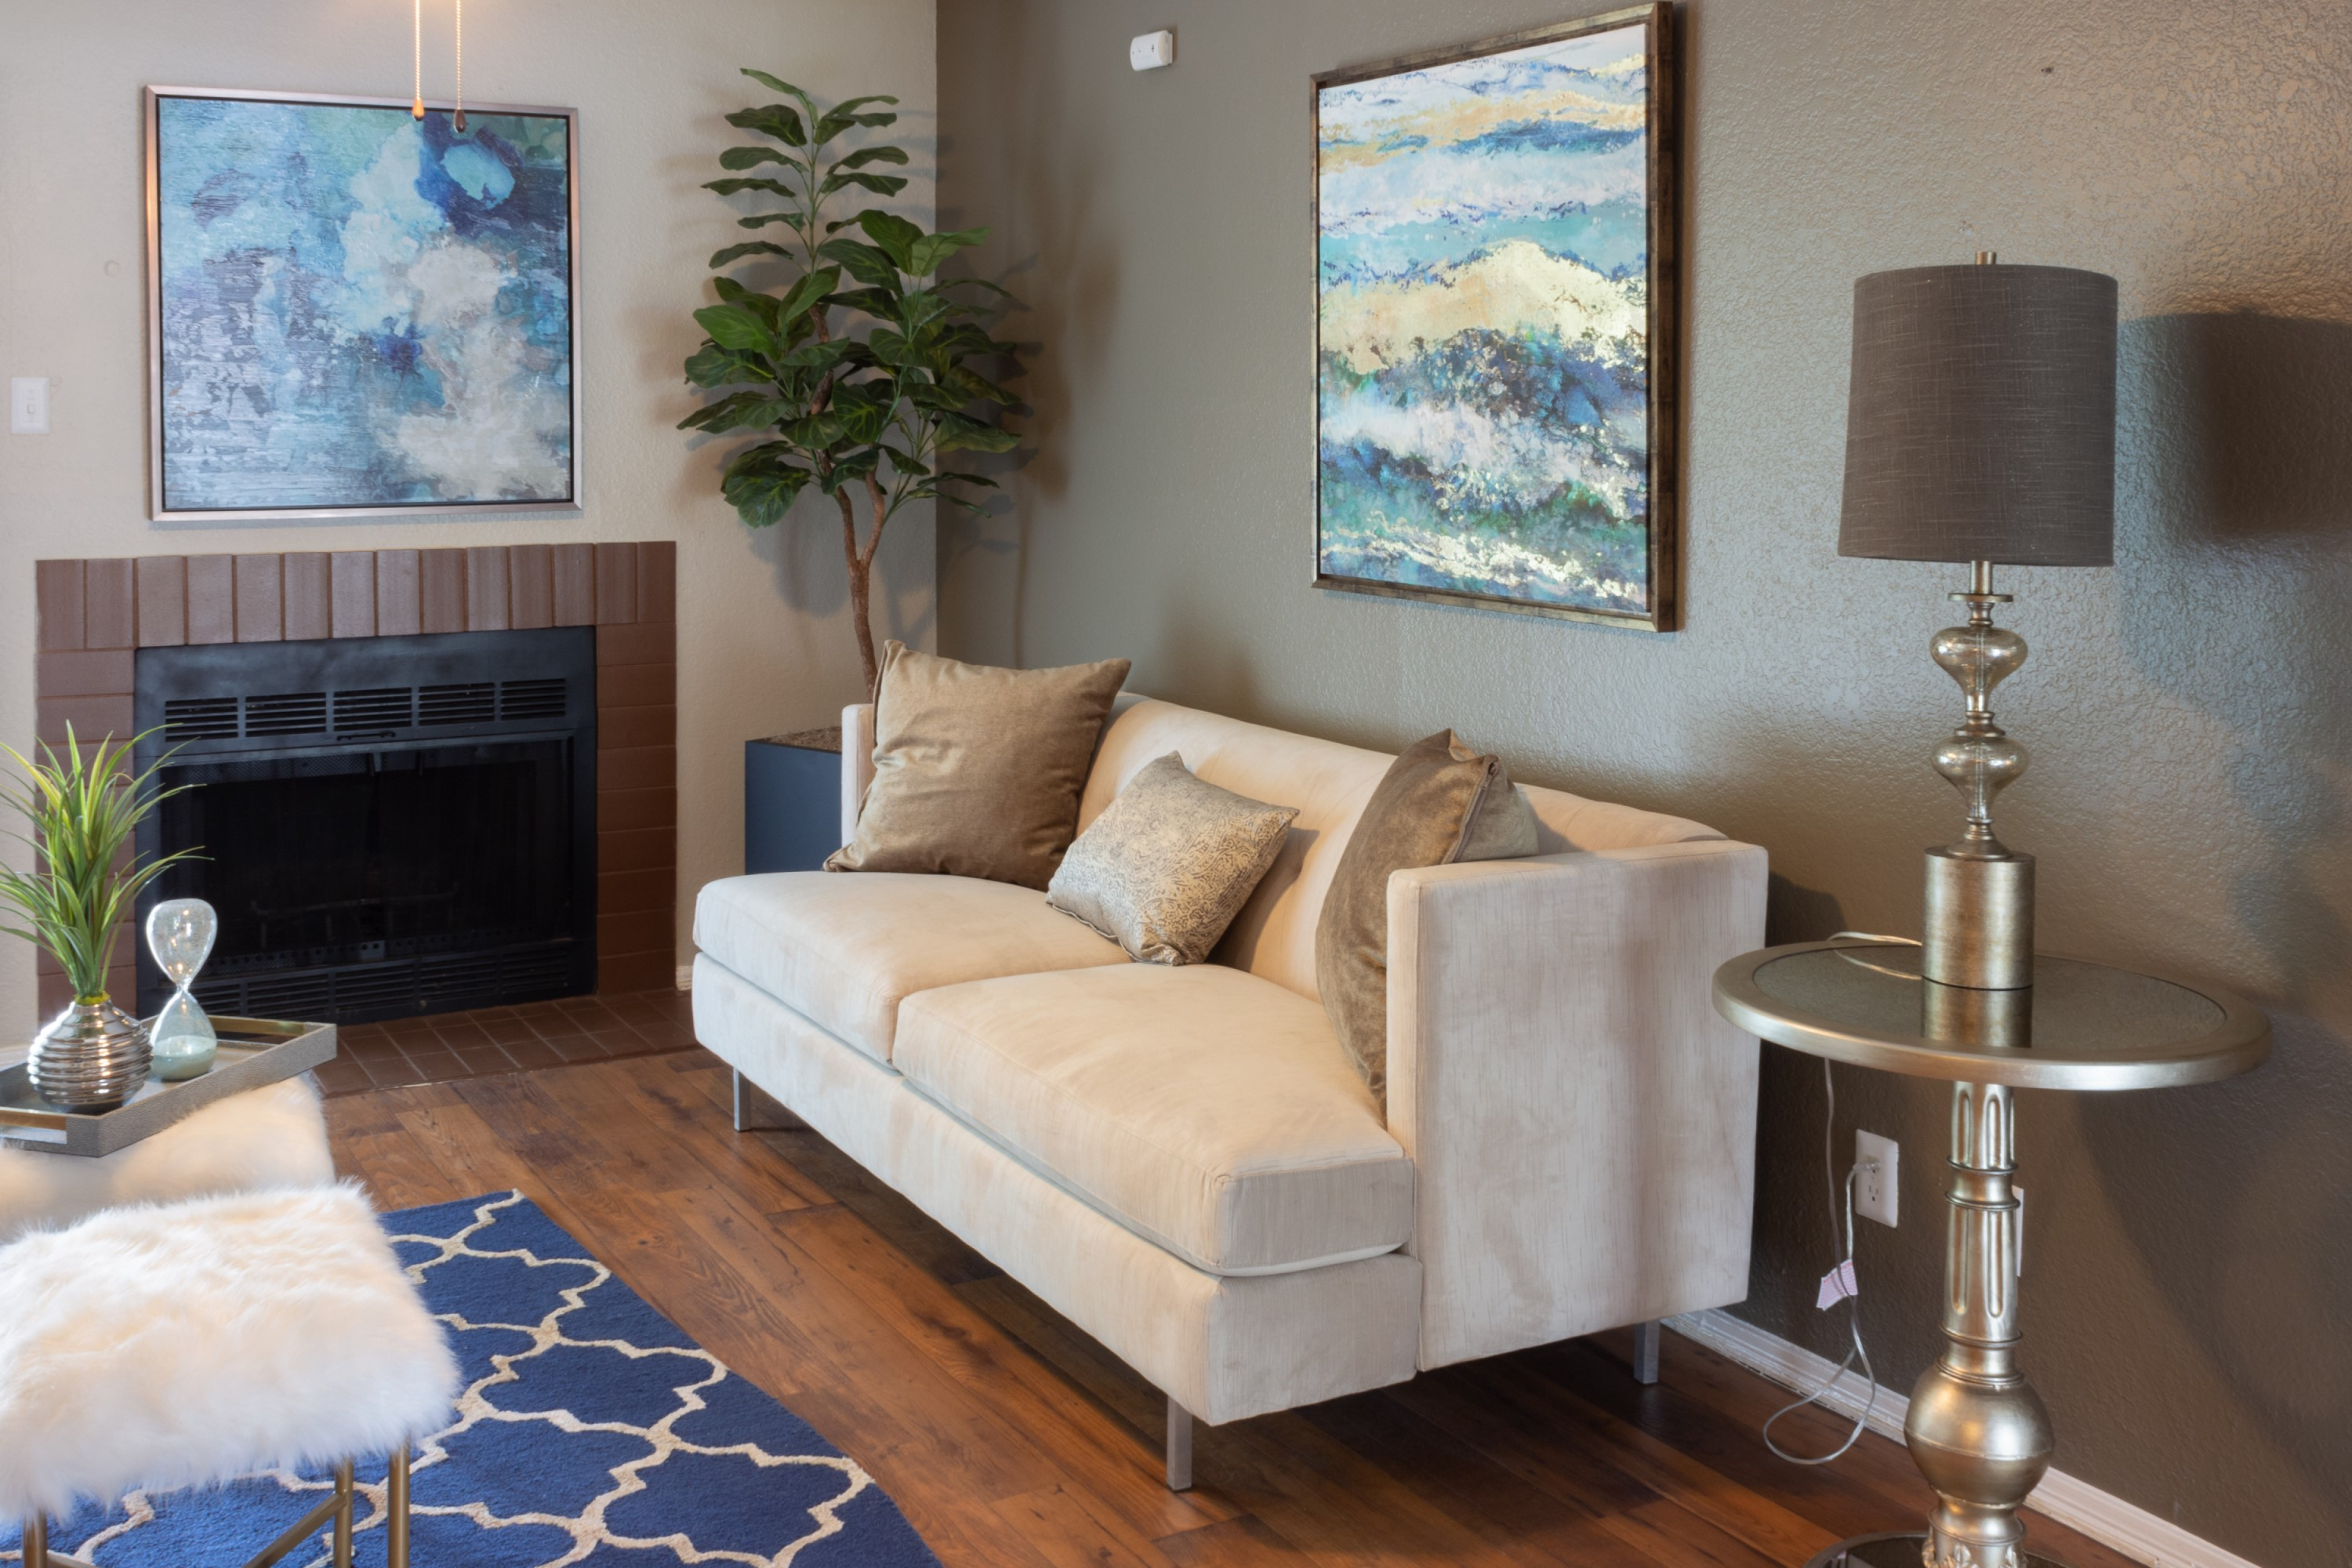 1 2 bedroom apartments for rent in dallas tx montecito - 2 bedroom homes for rent in dallas tx ...